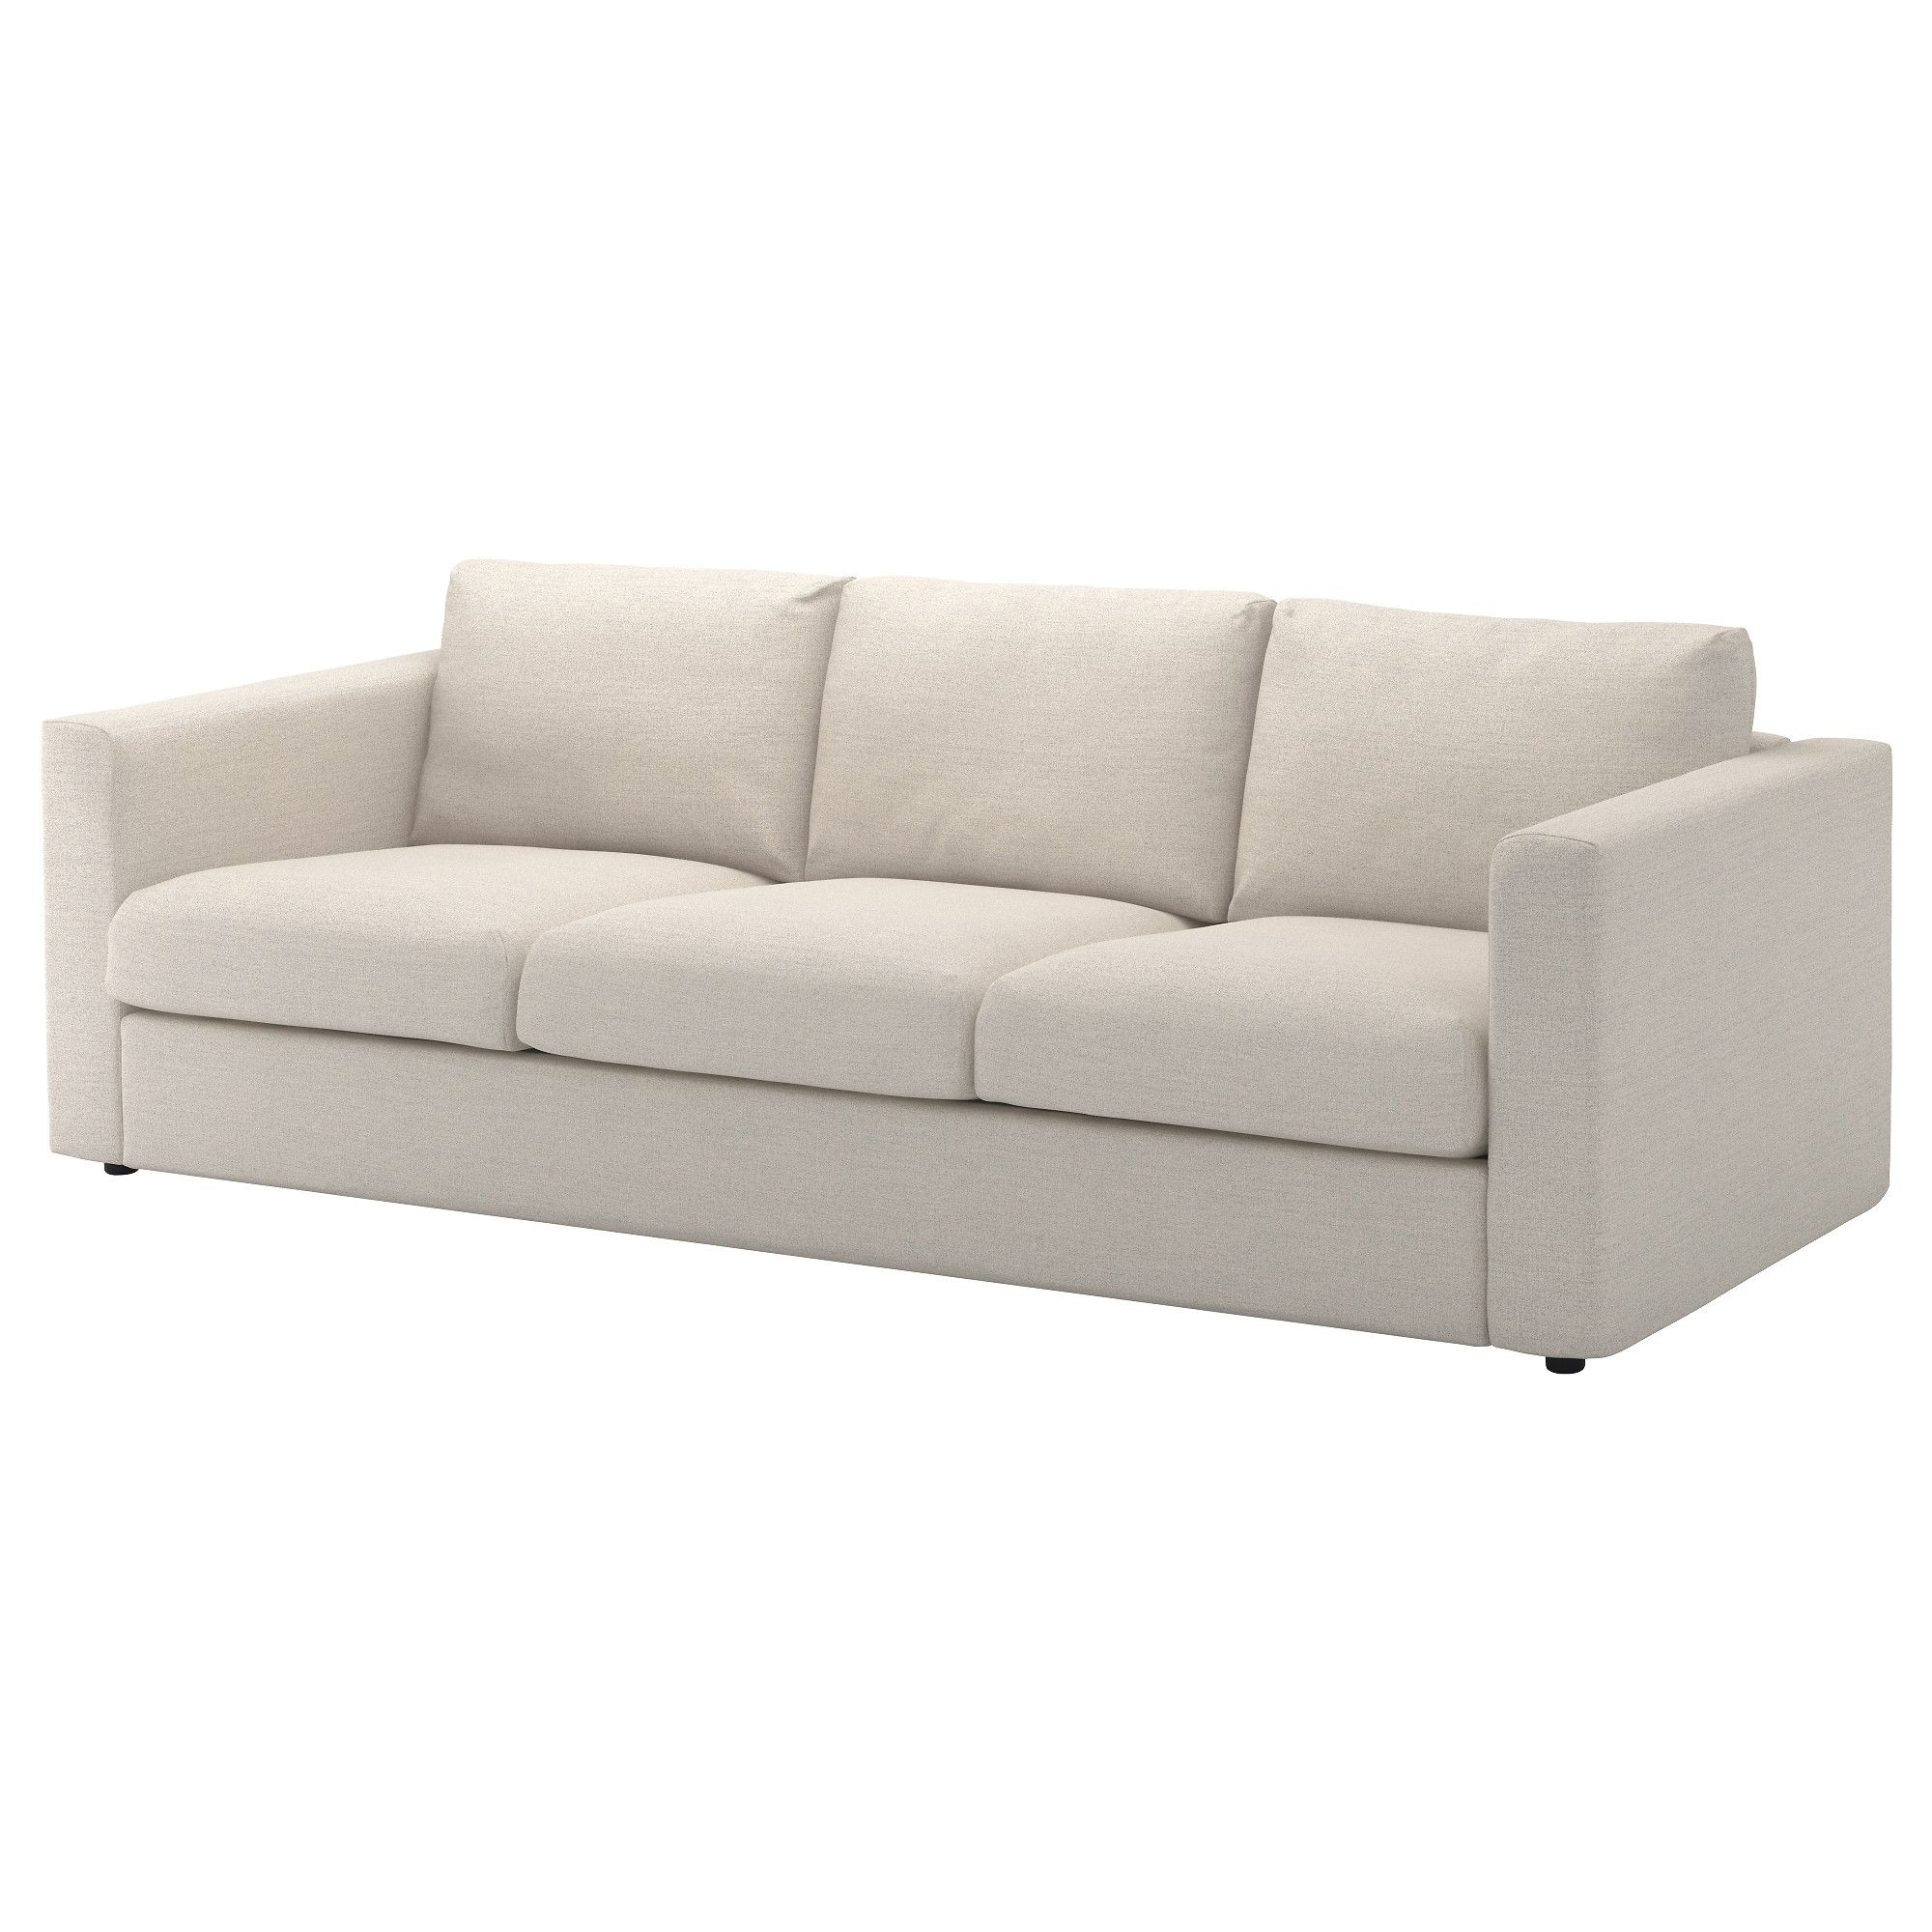 Cleaning Down Filled Sofa Cushions Cheap Sectional Vimle Gunnared Medium Gray Bus Furniture I Want